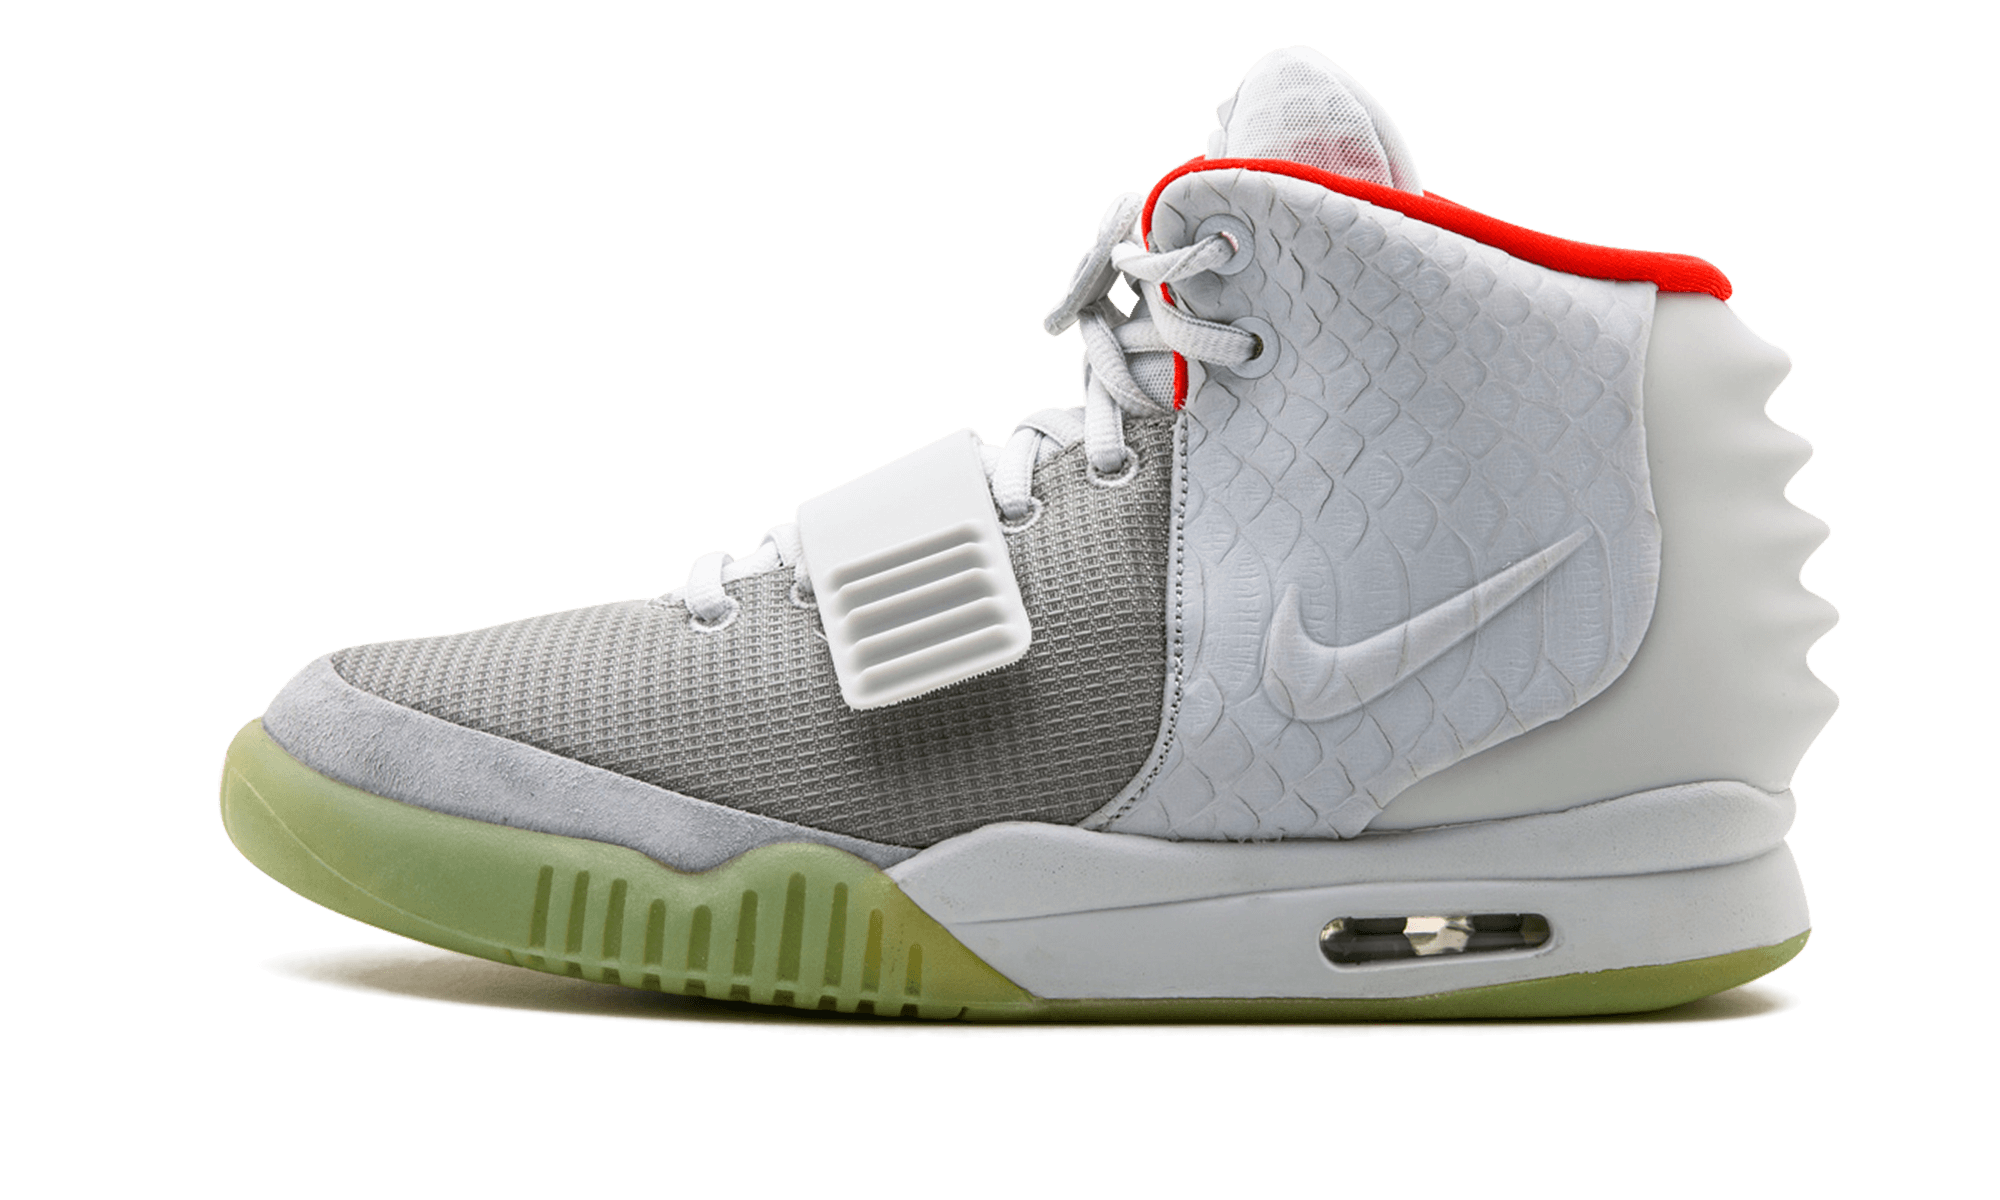 brand new d83a8 c58cd ... collaboration from Kanye West and Nike, the Air Yeezy 2, has already  achieved legendary status within the sneaker world. This Wolf Grey Pure  Platinum ...